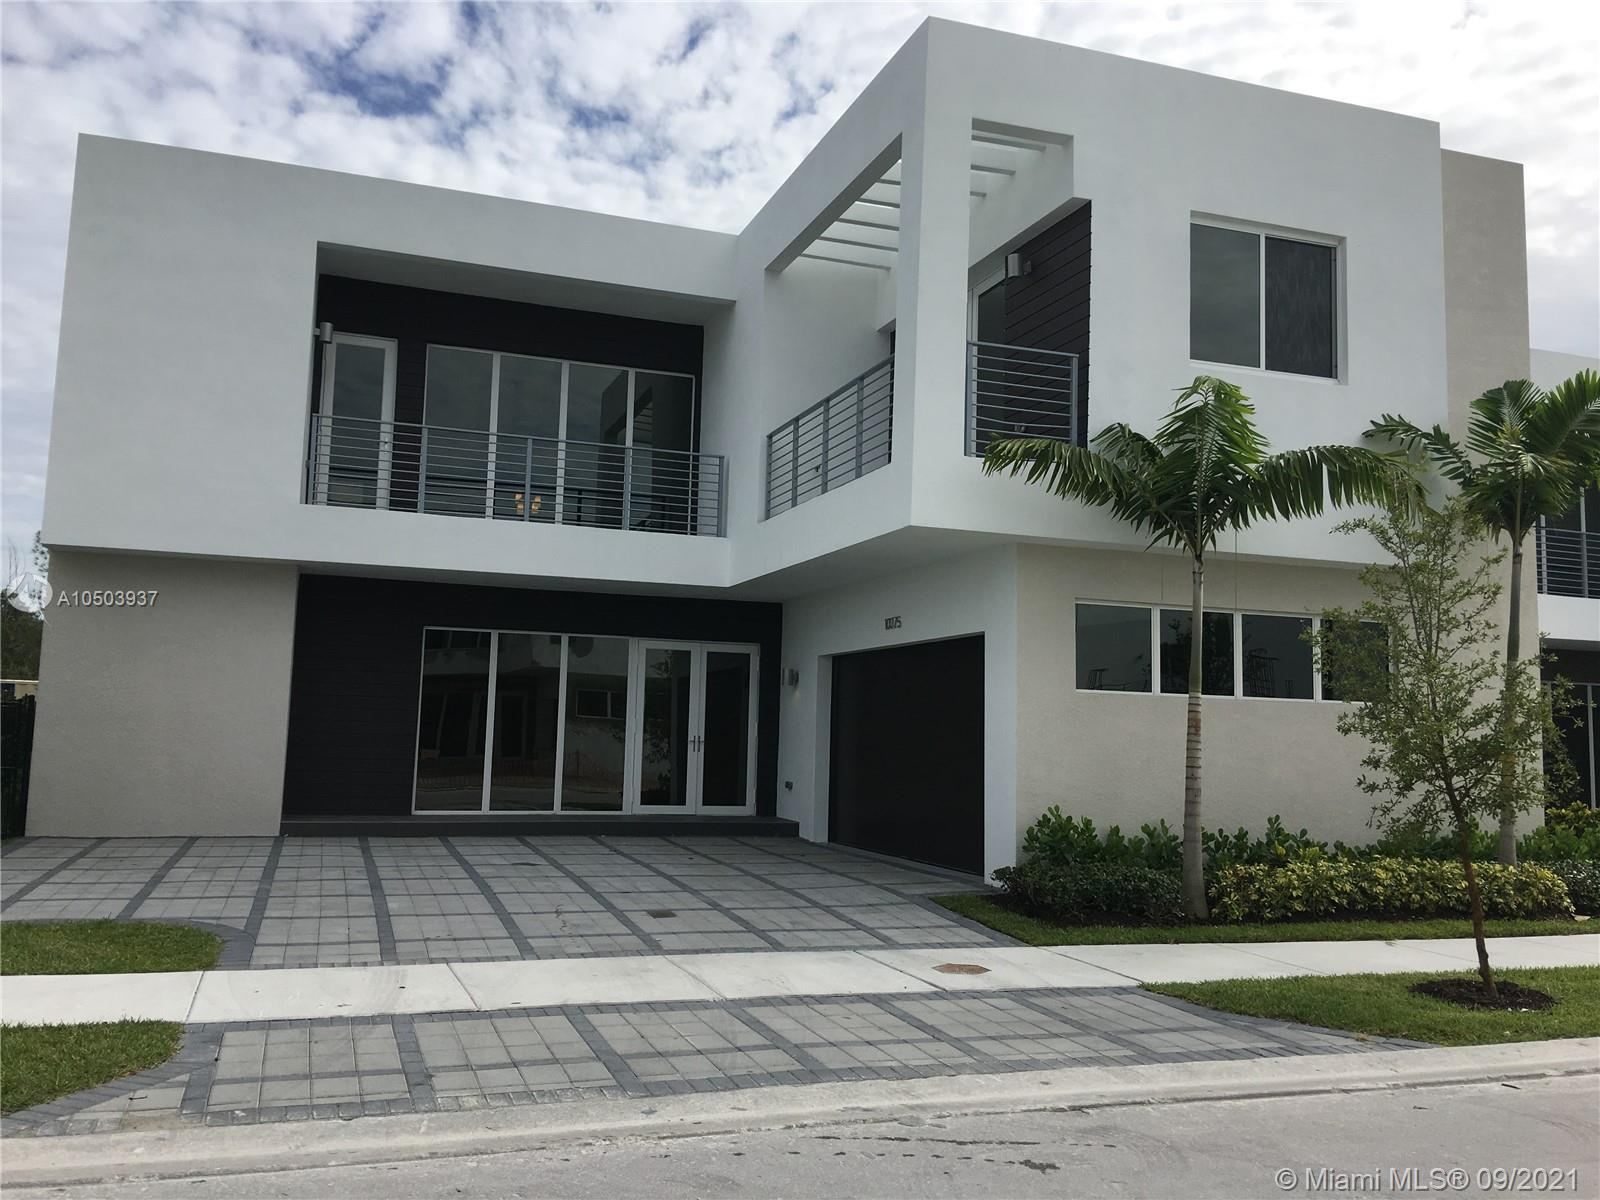 10075 NW 77th St, one of homes for sale in Doral